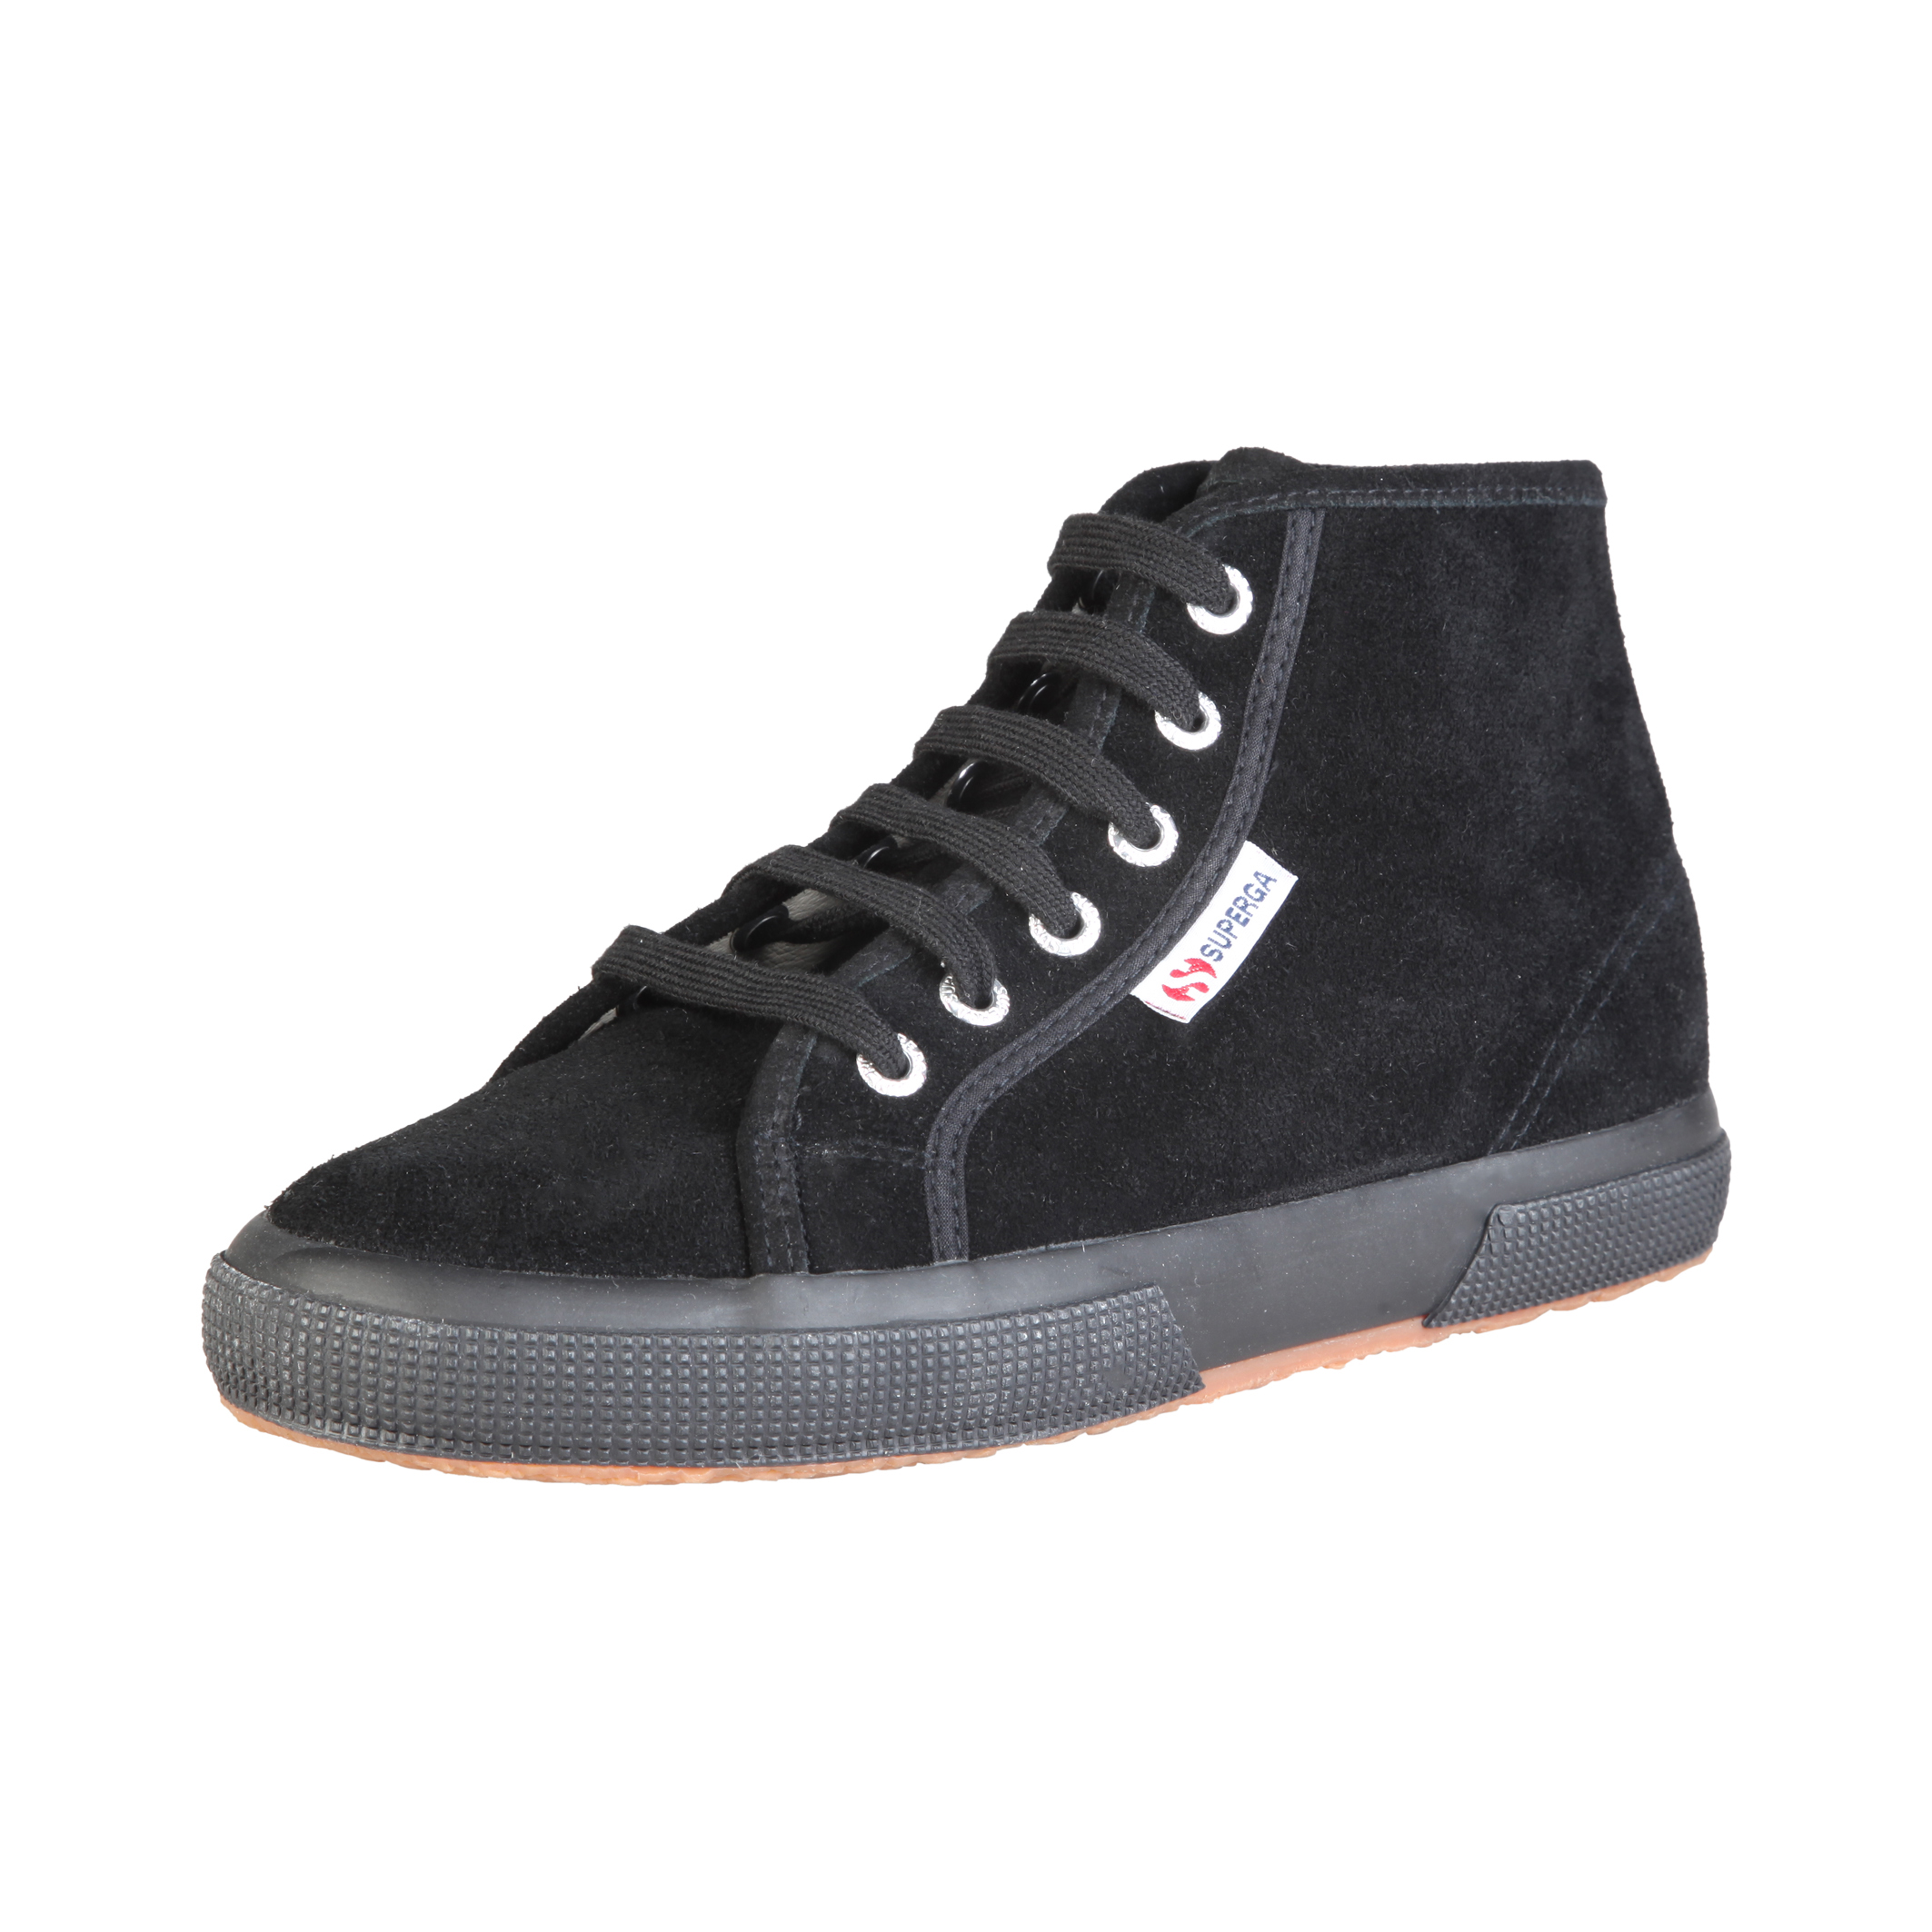 Chaussures   Superga S0028C0_2095 black